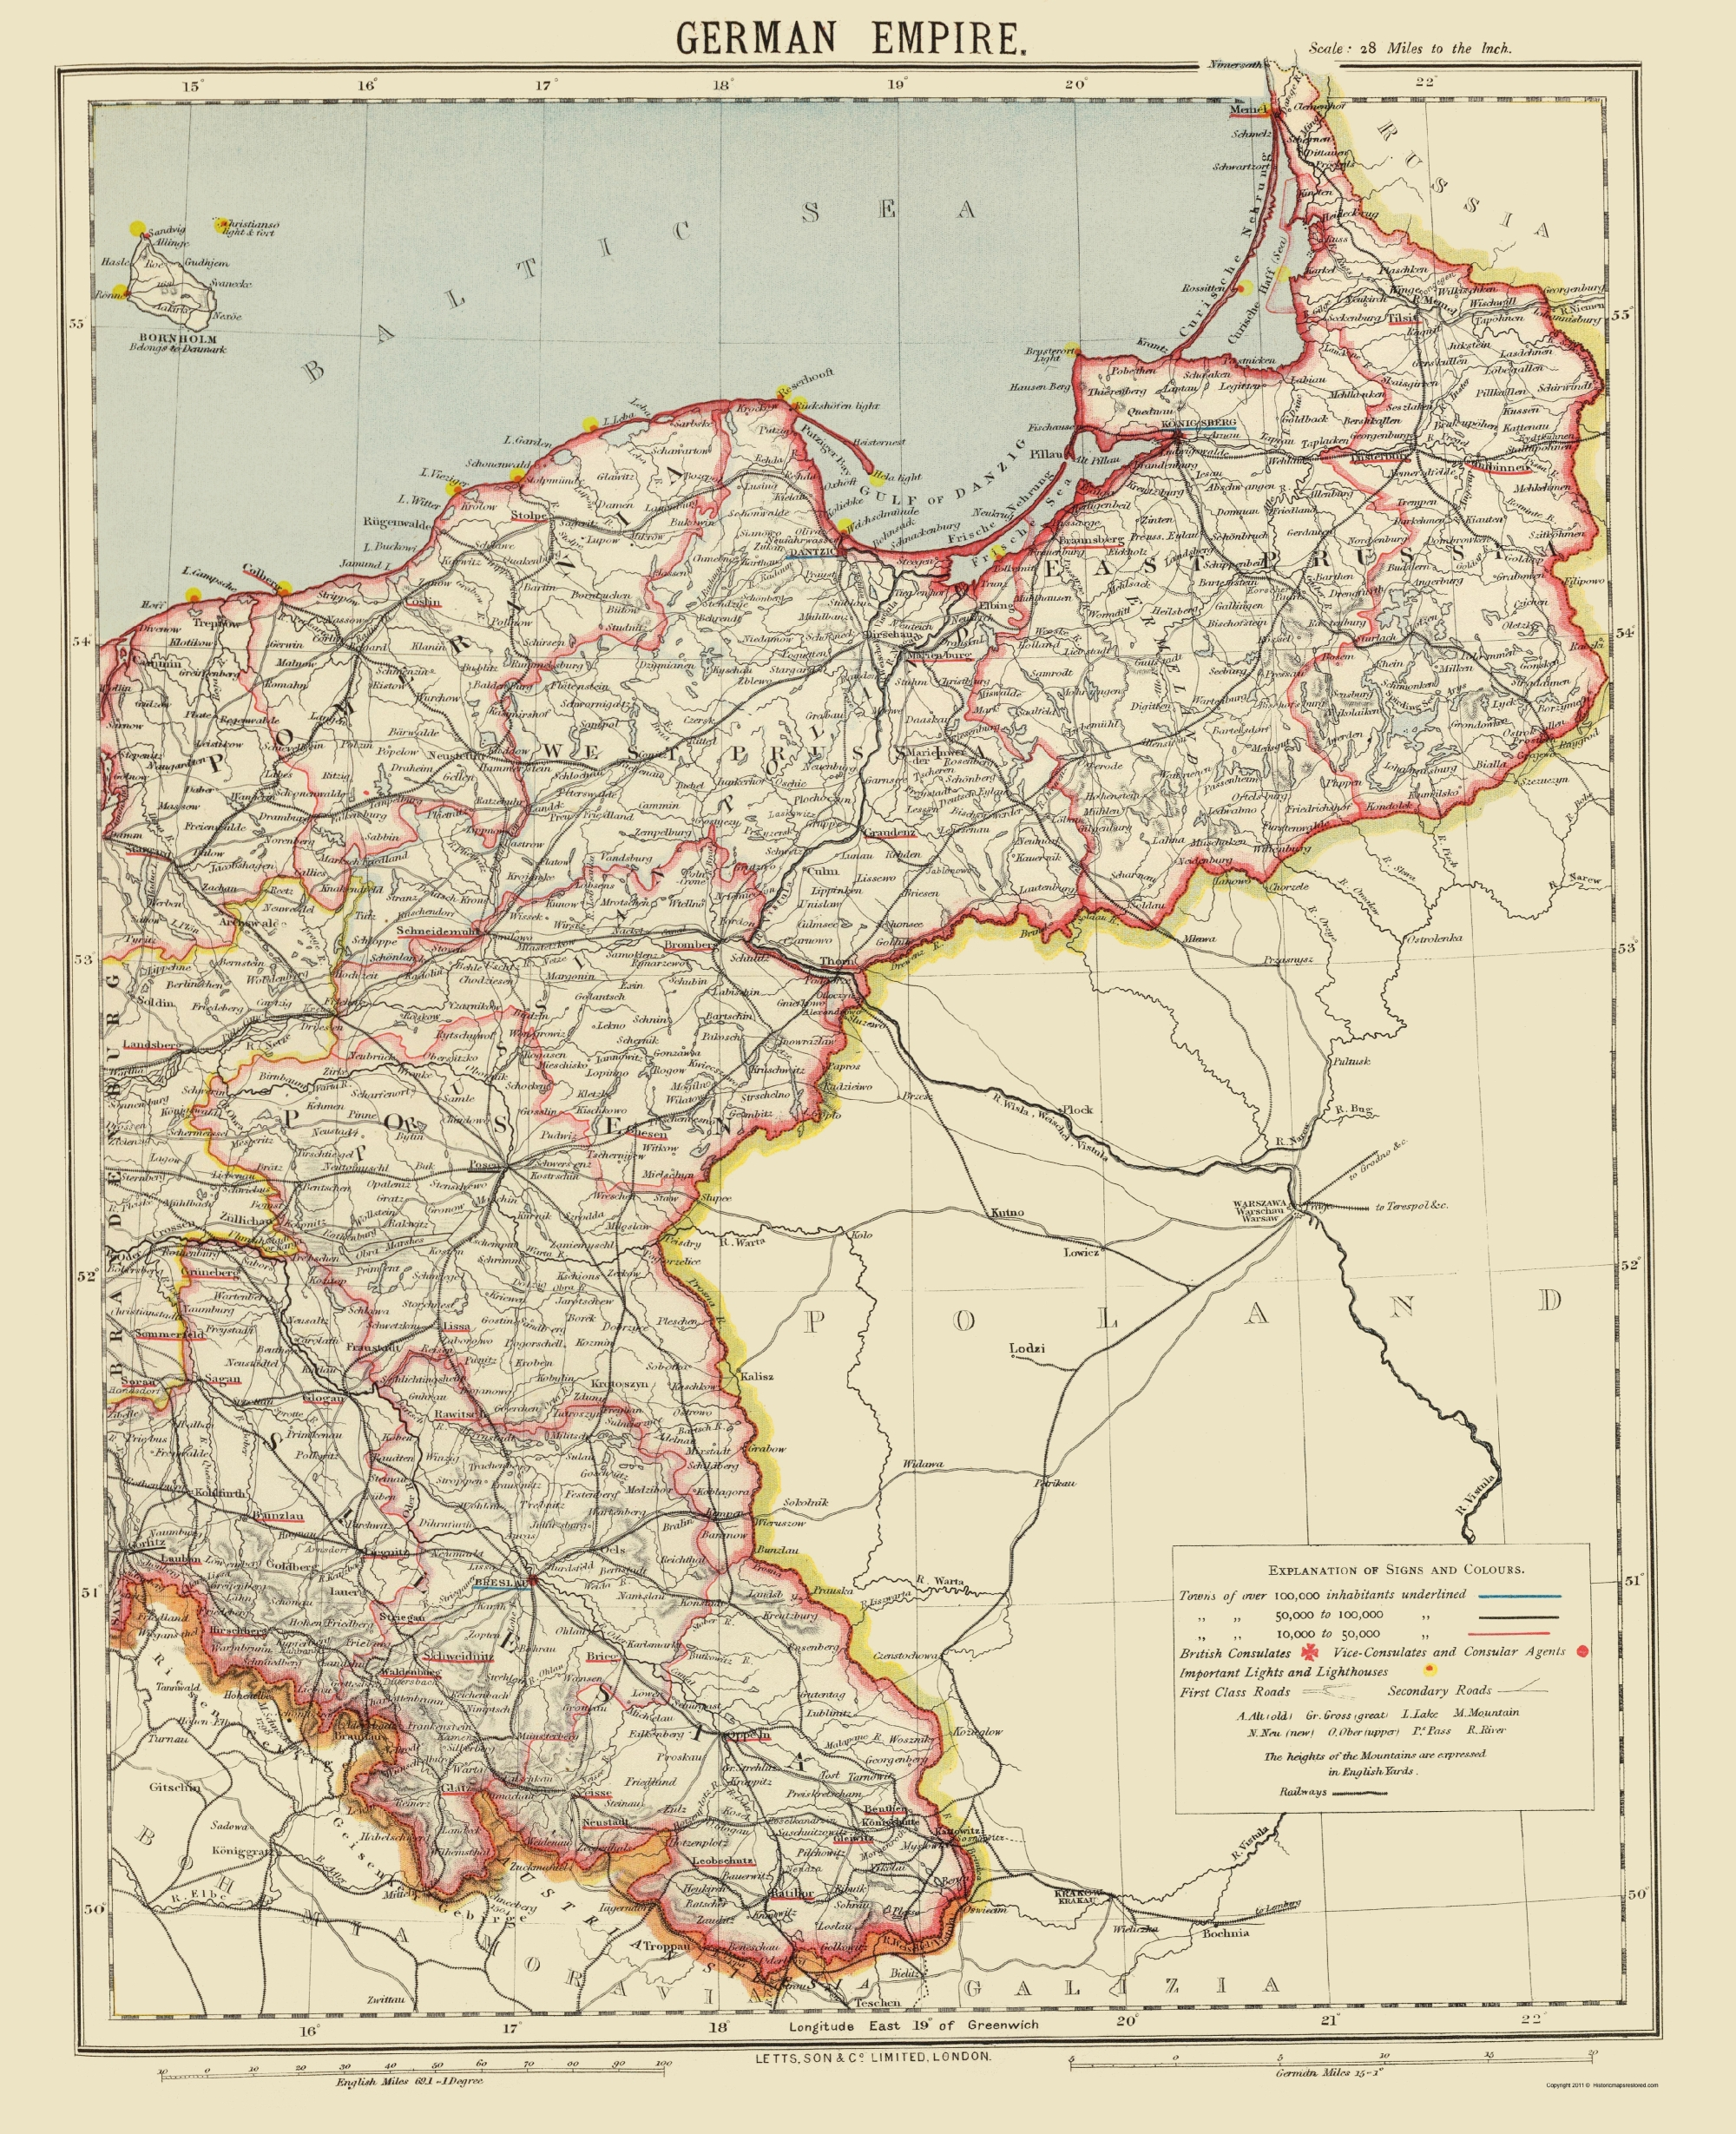 Old Germany Map   German Empire 2   Letts 1883   23 x 28.27